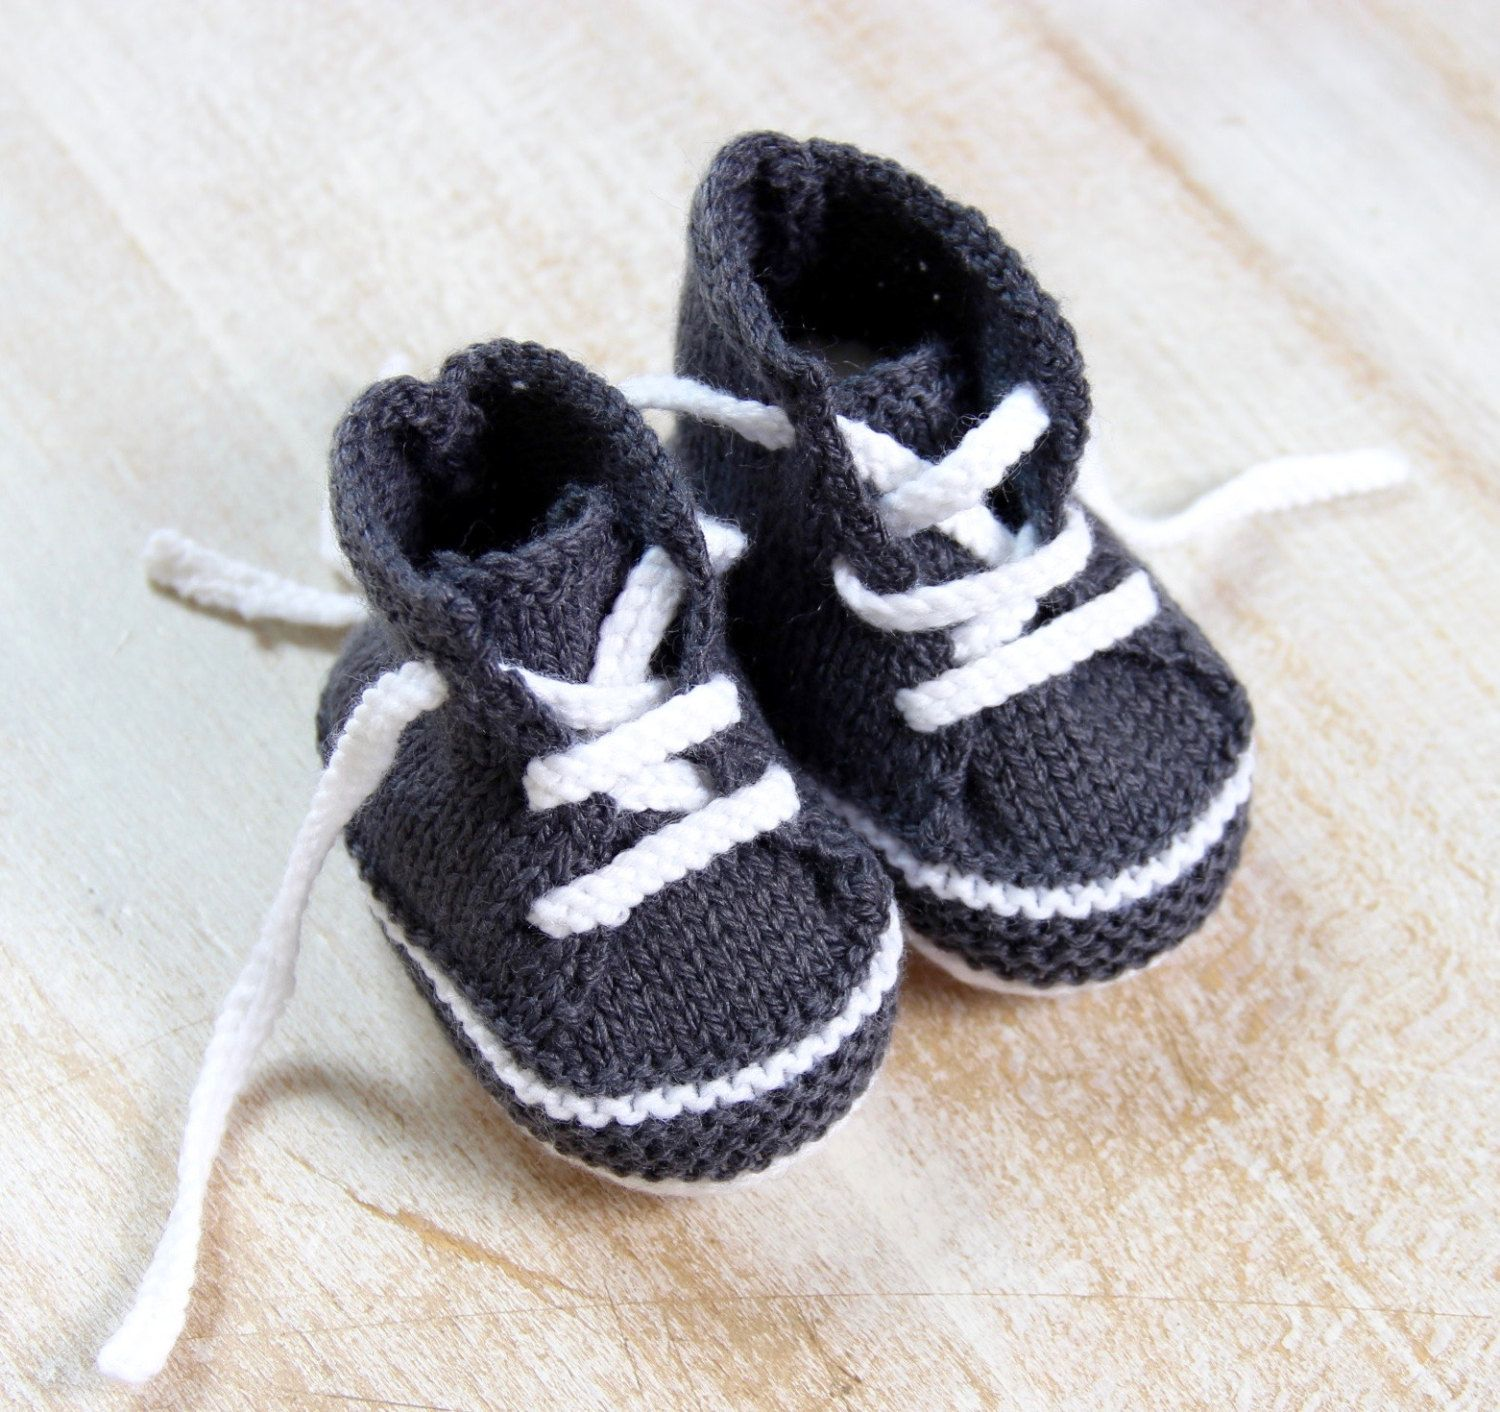 Baby Sneakers Knitting Pattern Baby Instructions in English